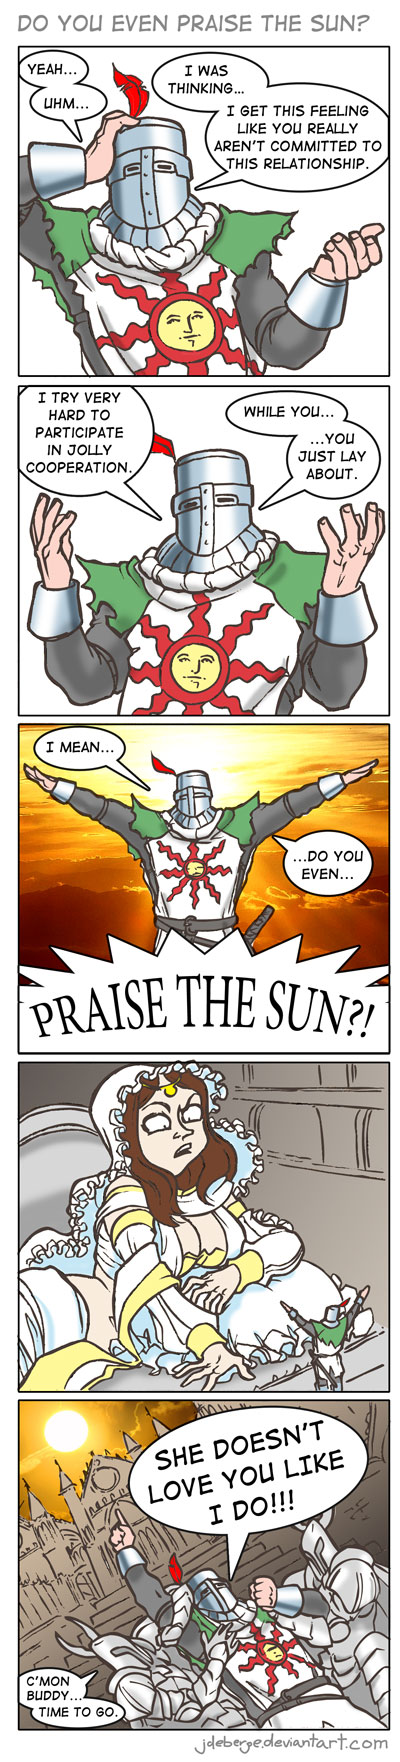 Do you even praise the sun? by jdeberge on DeviantArt